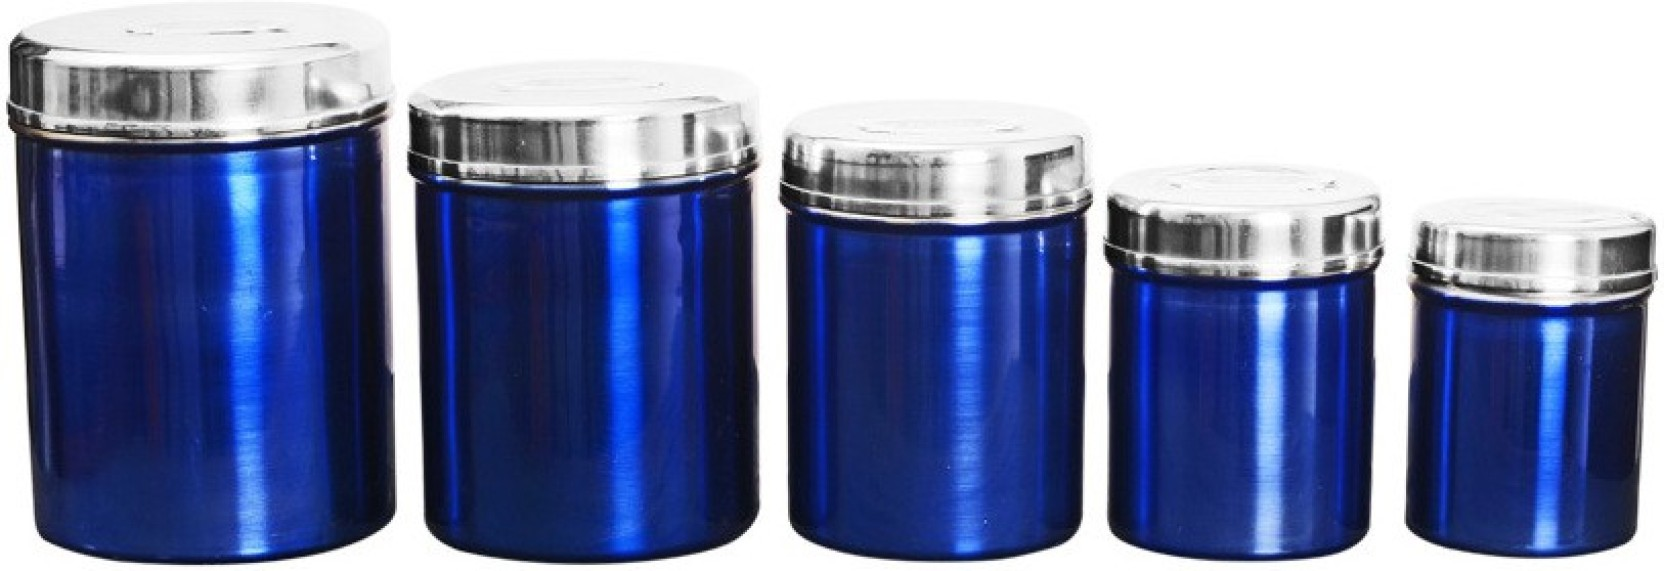 Heluvi Gl Canister A2bl 3500 Ml Steel Tea Coffee Sugar Container Pack Of 5 Blue